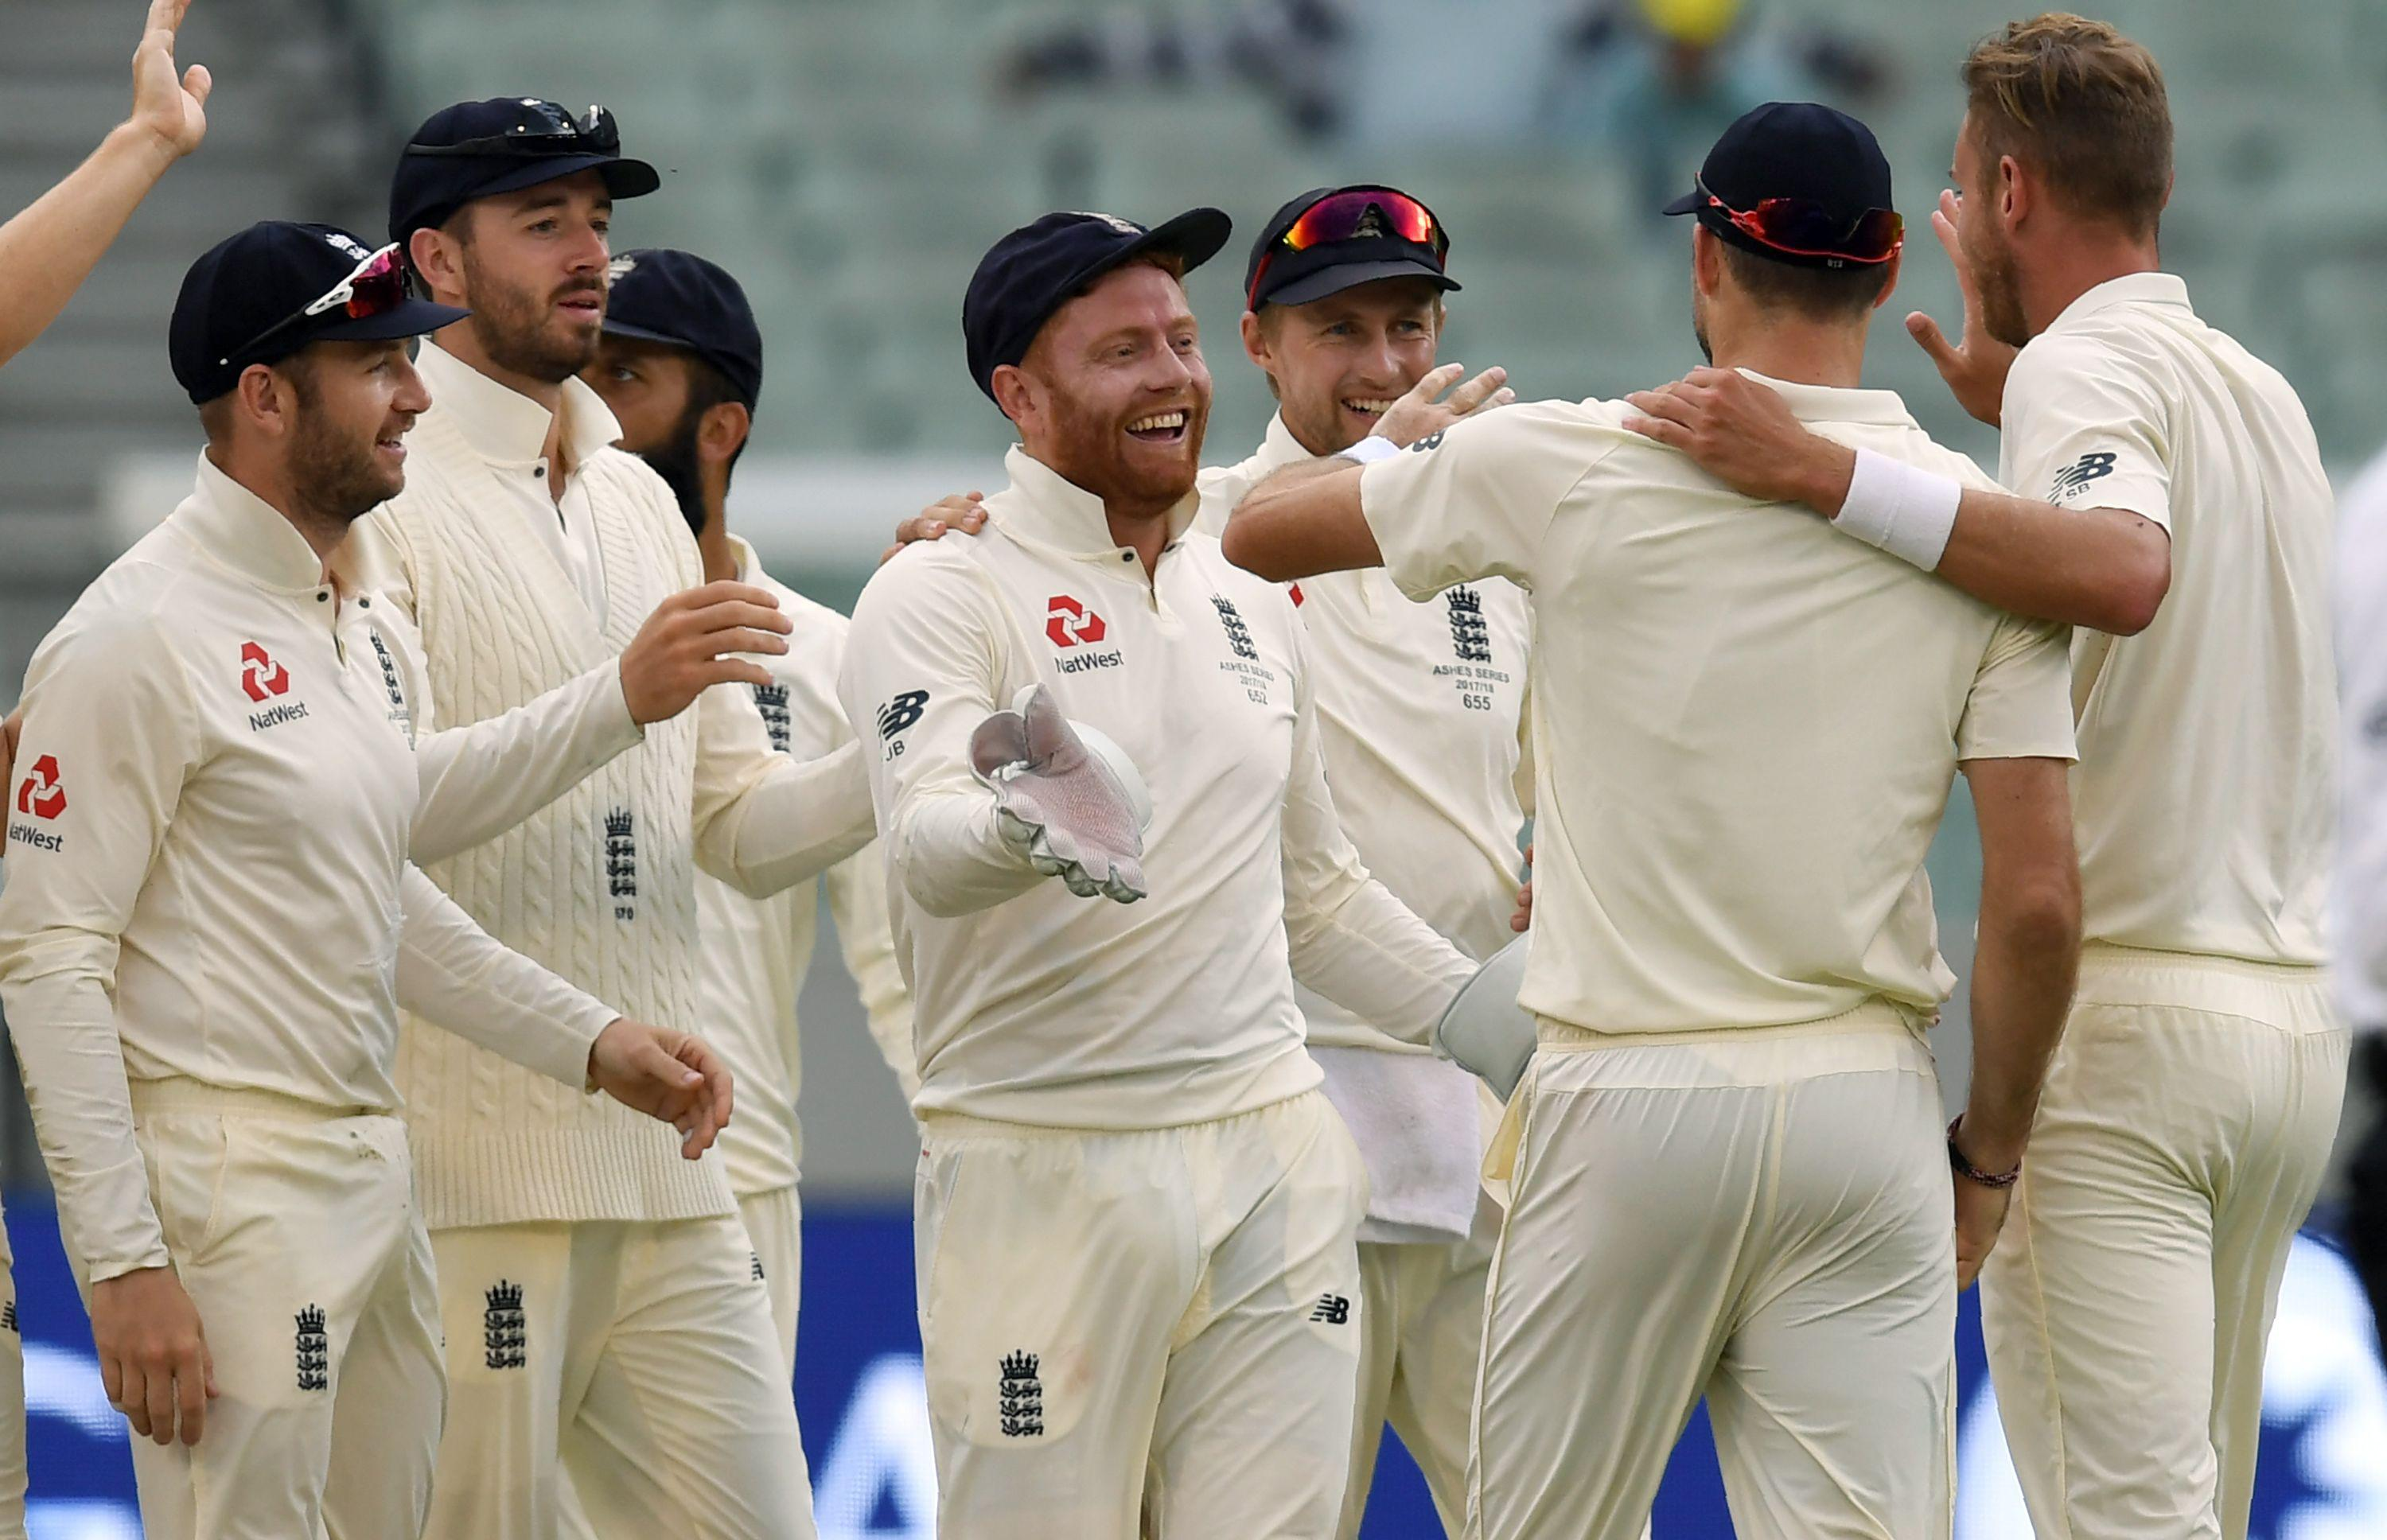 Jonny Bairstow is congratulated after his catch to dismiss Shaun Marsh